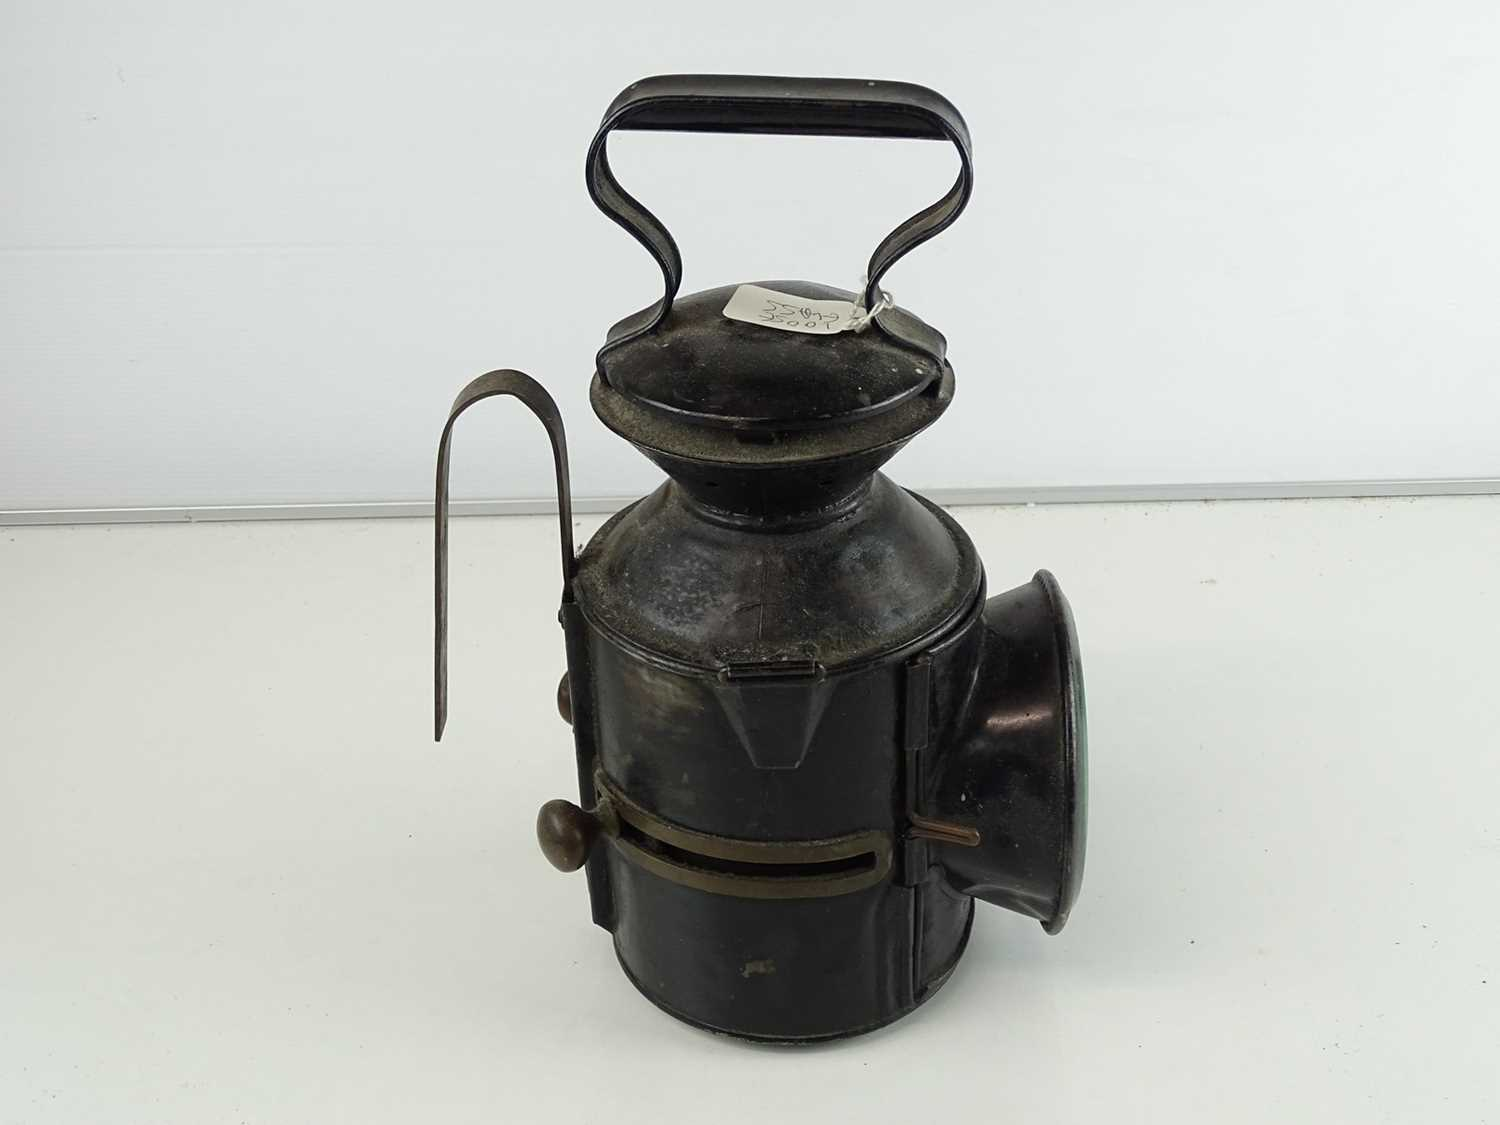 A Great Eastern Railway oil lamp - Image 4 of 4